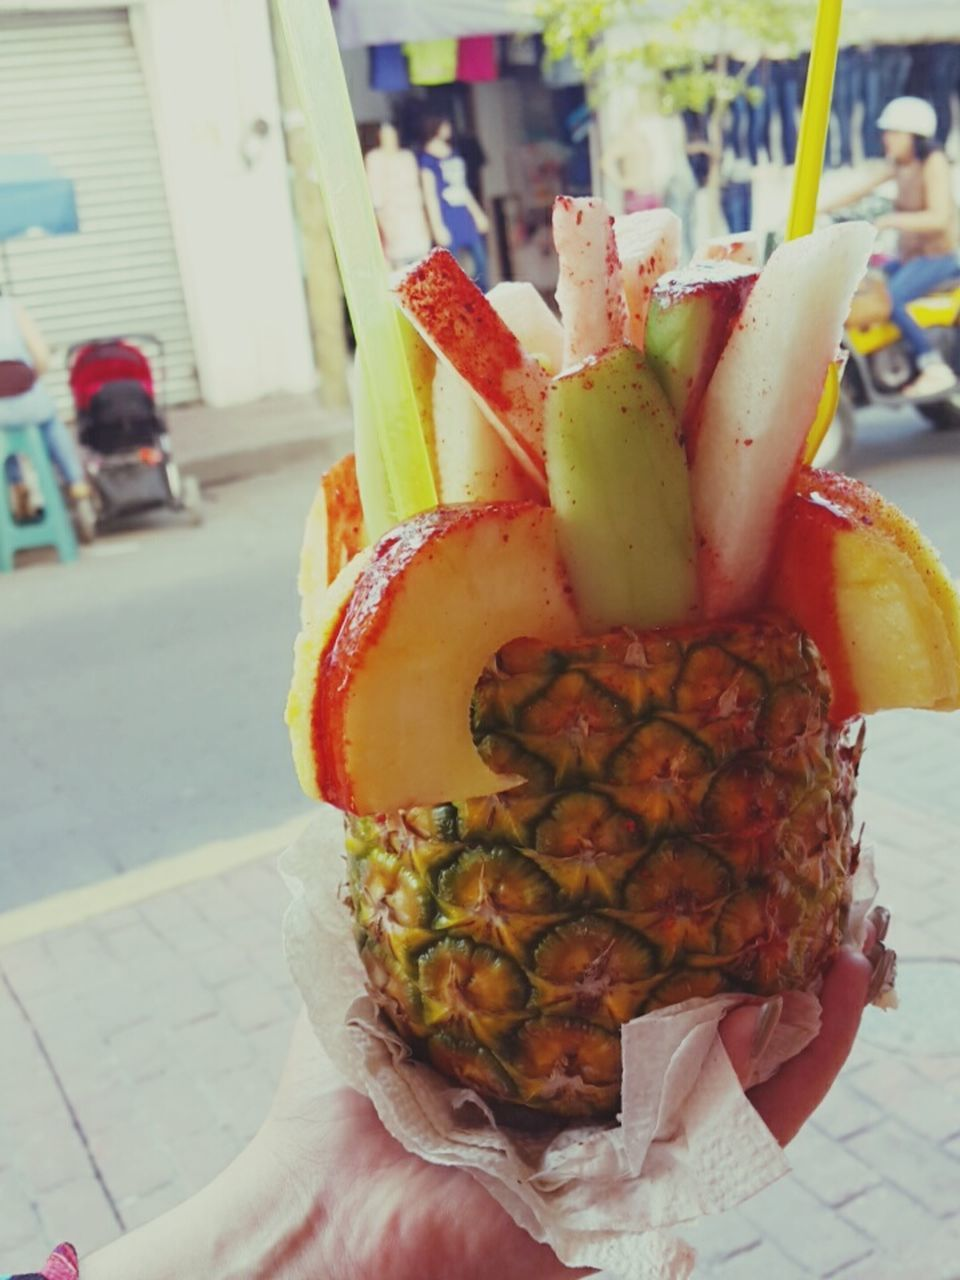 human hand, human body part, food and drink, real people, one person, food, holding, focus on foreground, freshness, close-up, lifestyles, outdoors, day, sweet food, ready-to-eat, fruit, healthy eating, men, building exterior, people